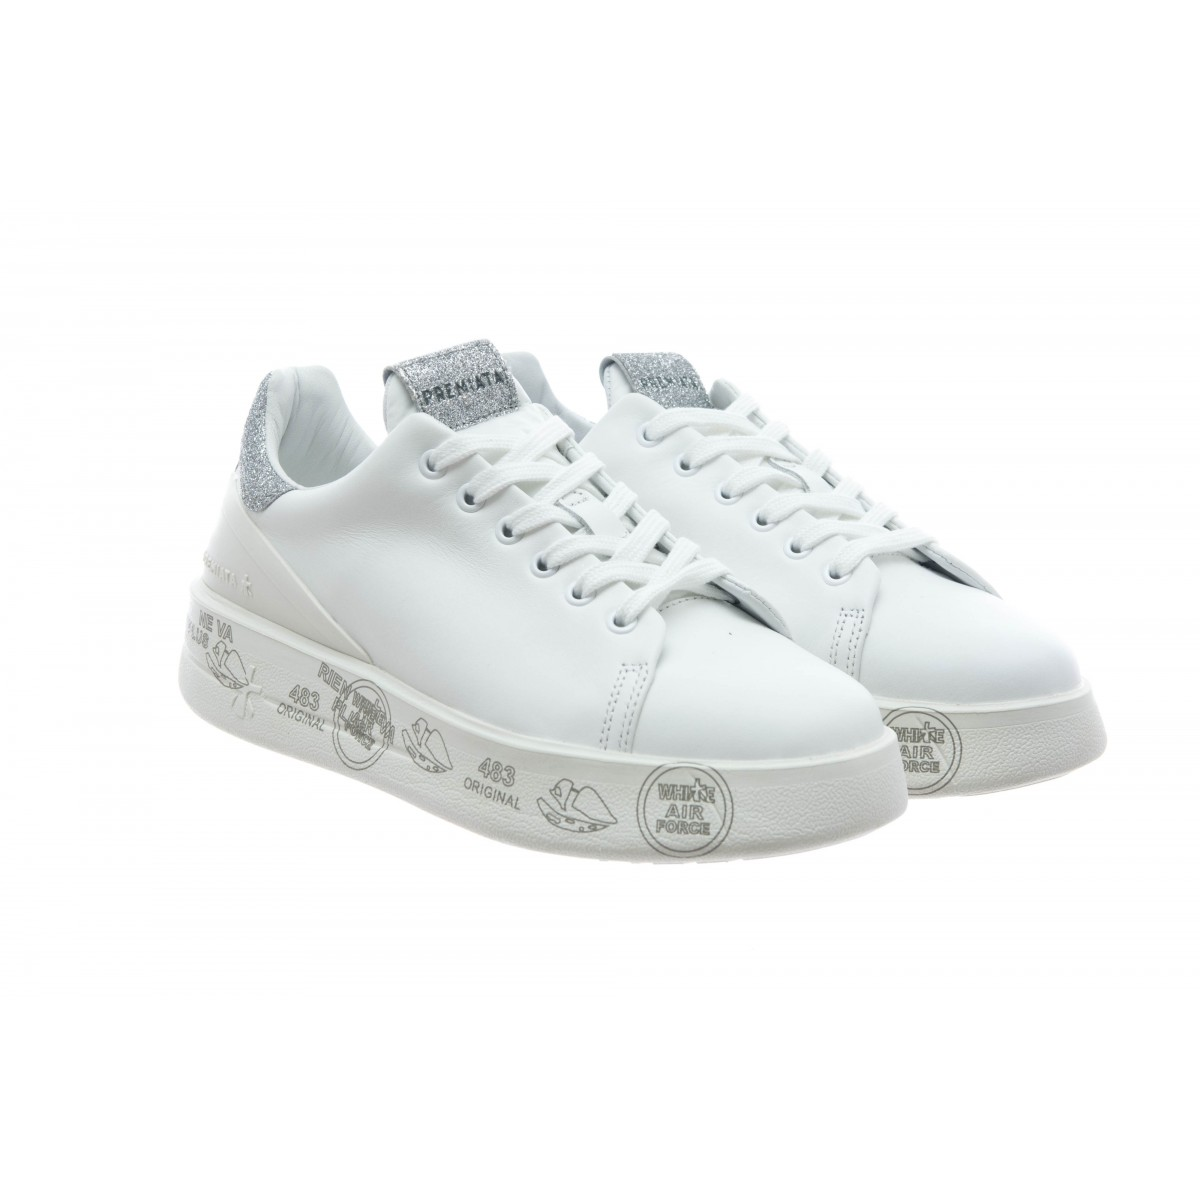 Scarpe - Belle 3014 sneakers donna bianca